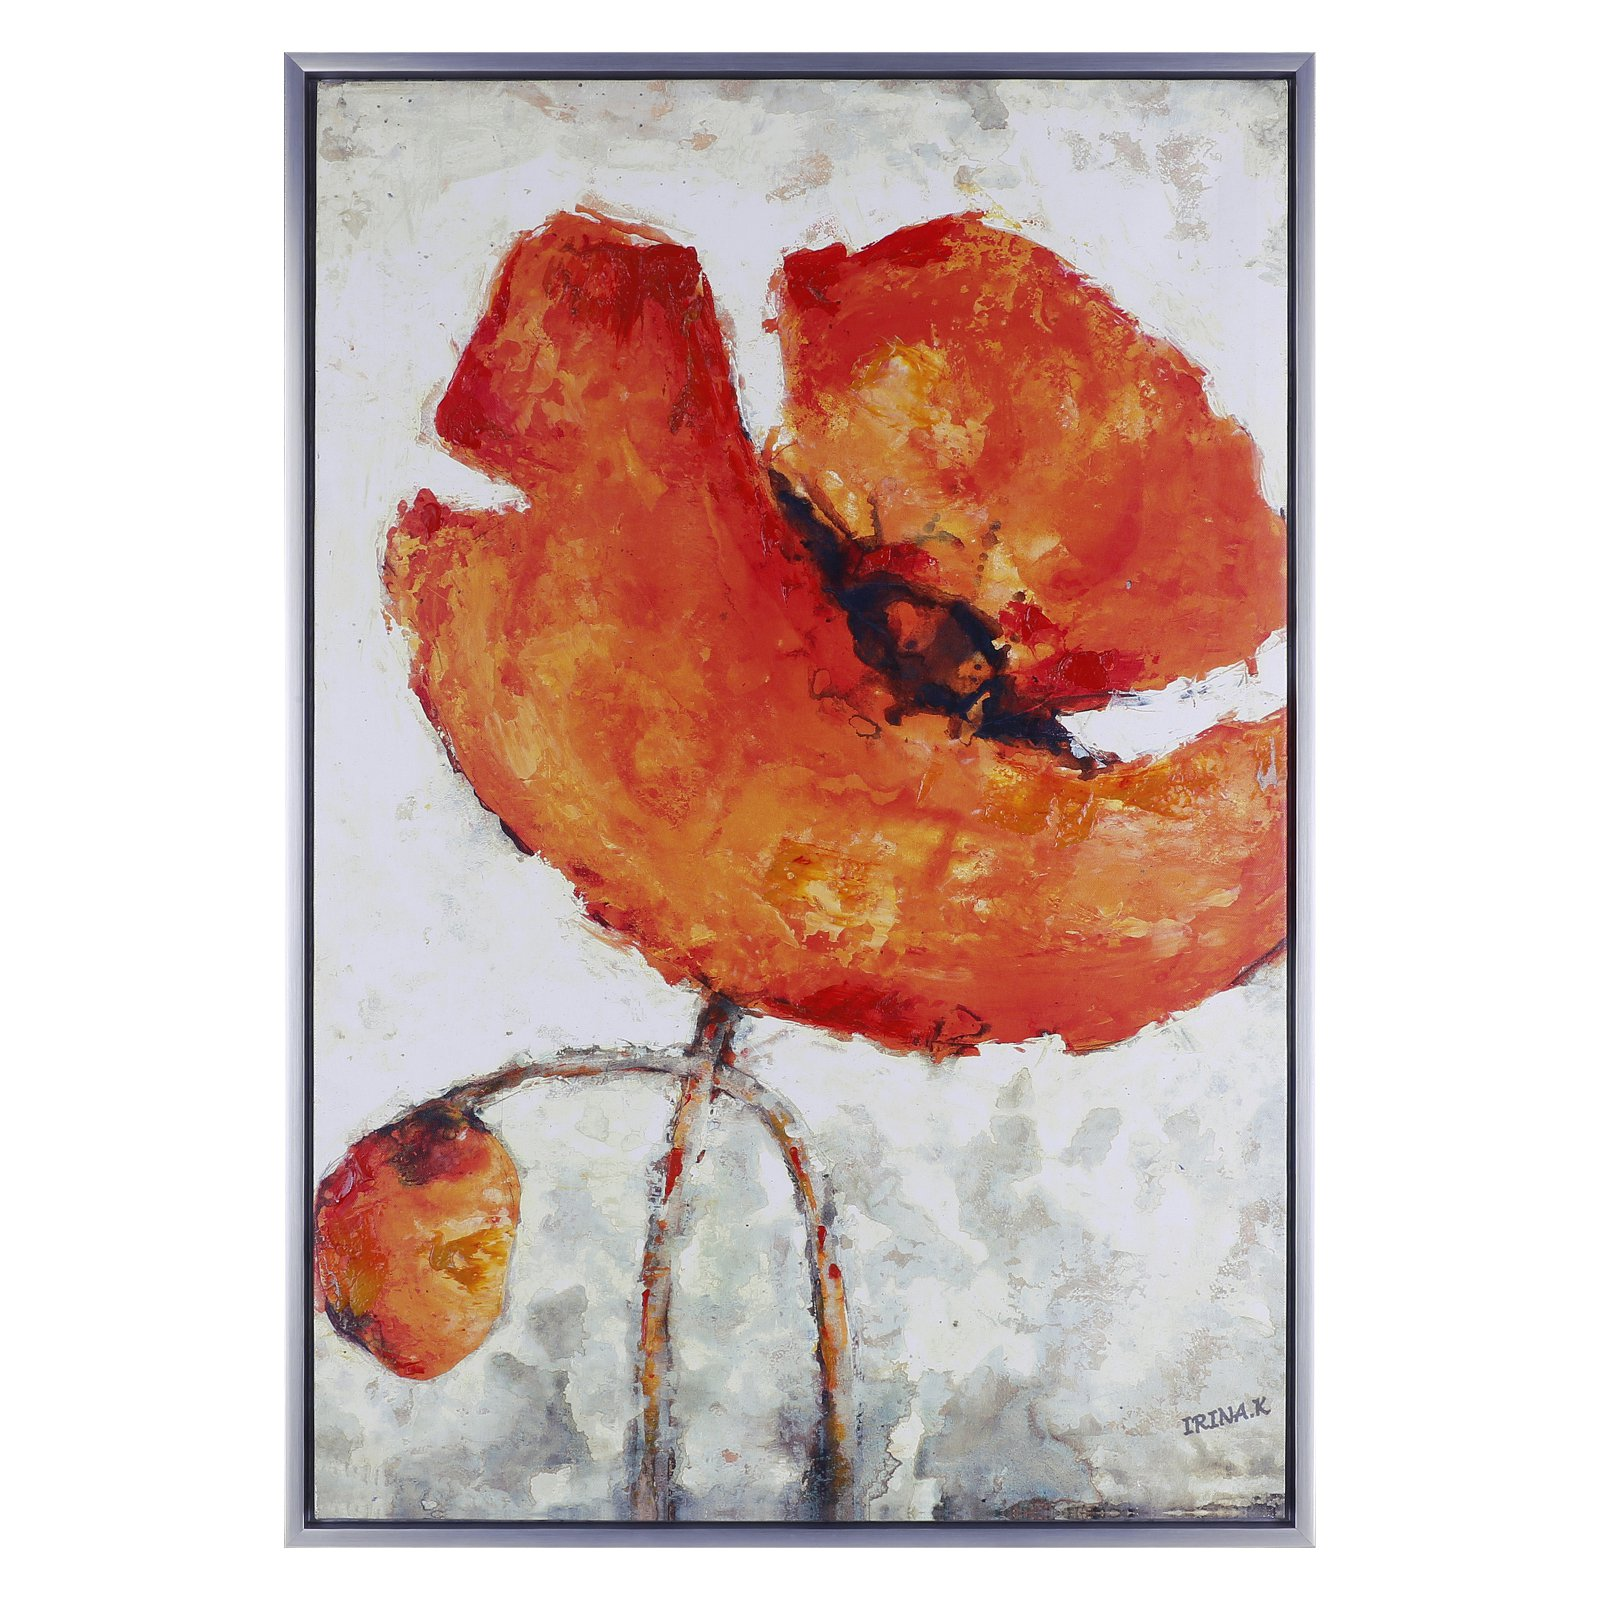 ArtMaison Canada Orange Glory Framed Acrylic Canvas Wall Art